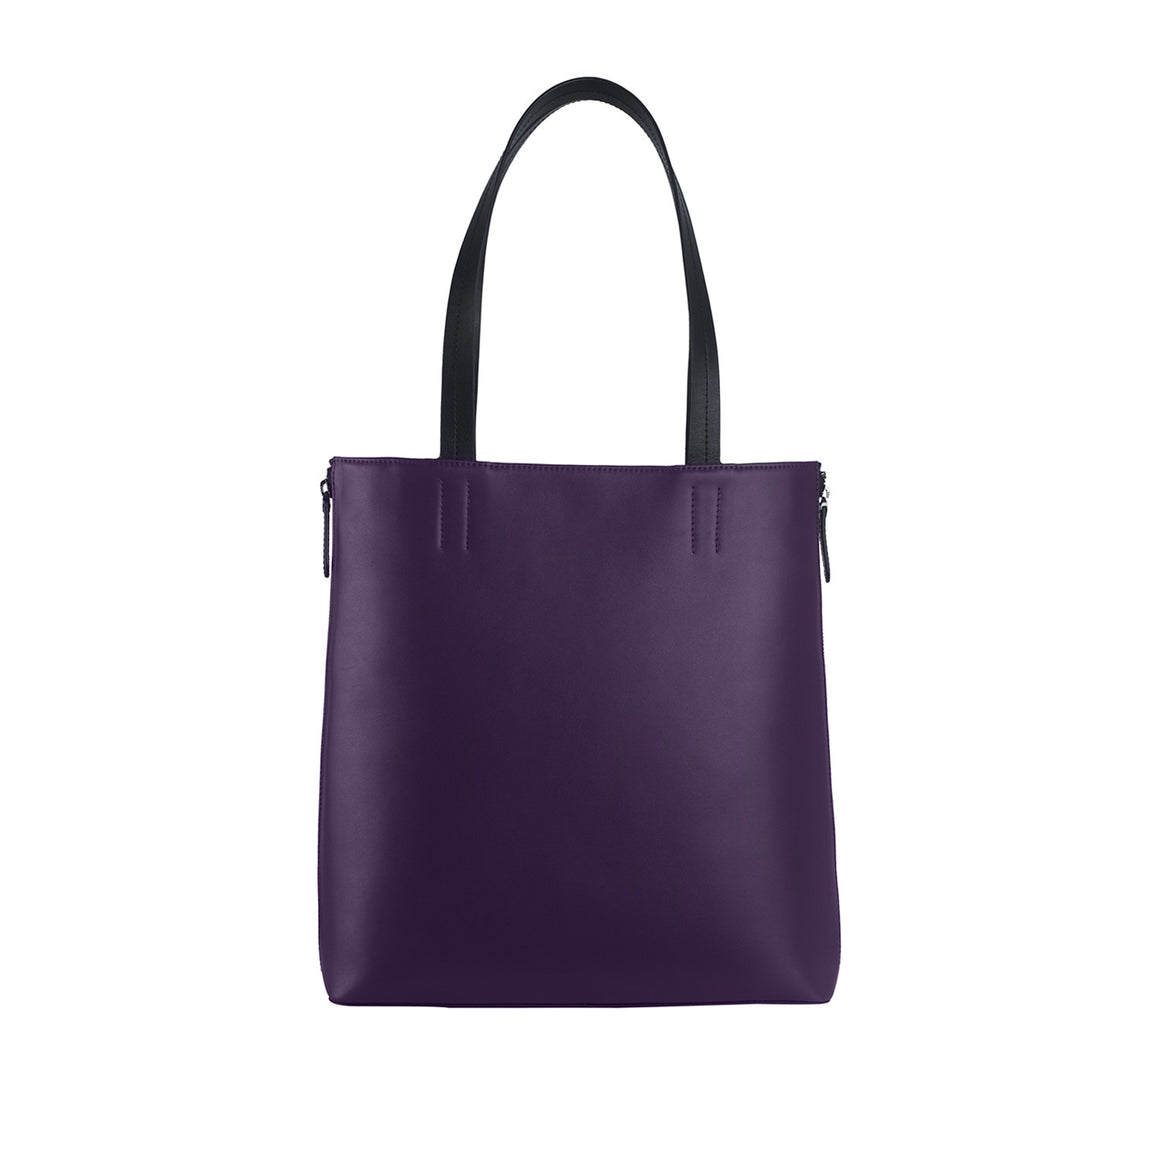 SB 0005 - TOHL CARLISLE WOMEN'S DAY SHOPPER - CHARCOAL BLACK